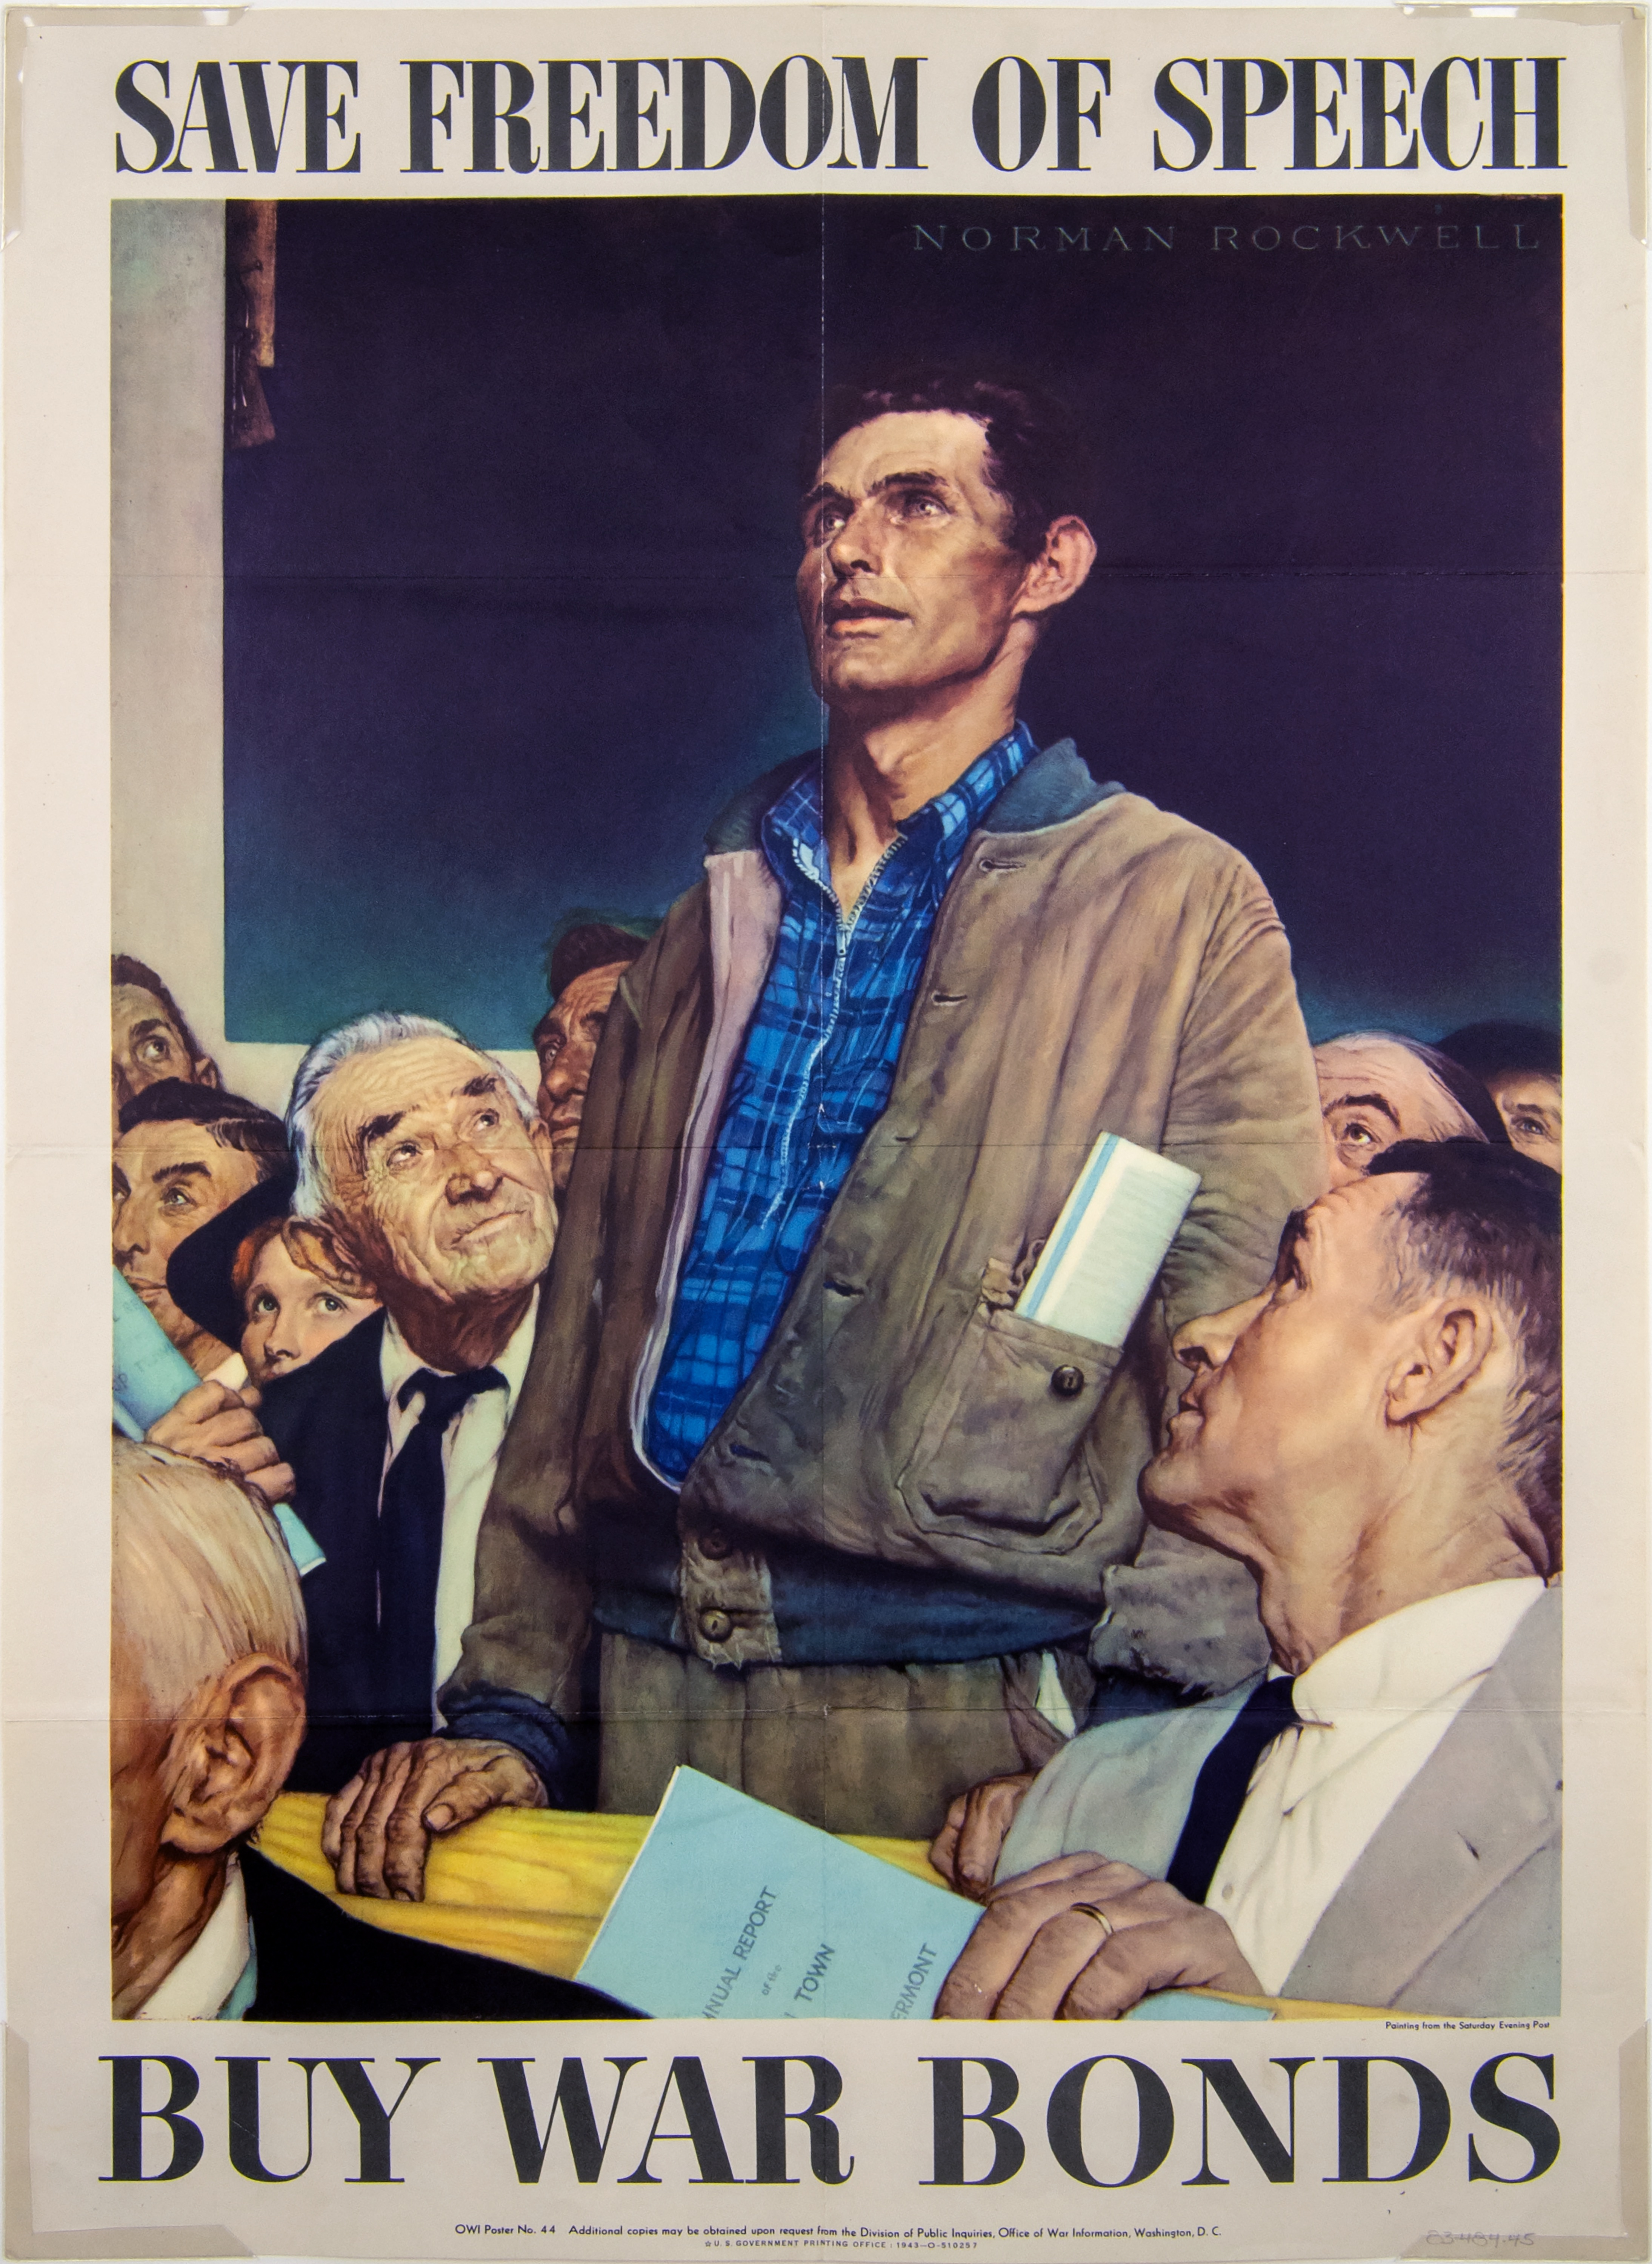 Photo of a poster from 1943, used to sell war bonds. Norman Rockwell's image depicting freedom of speech is characterized by a casually-dressed gentleman, standing  up amidst a crowd of people seated. He is looking forward, and is speaking to the group. He is wearing a casual button-up jacket, trousers, and a collared plaid shirt. He has some papers rolled up and tucked into his jacket pocket.